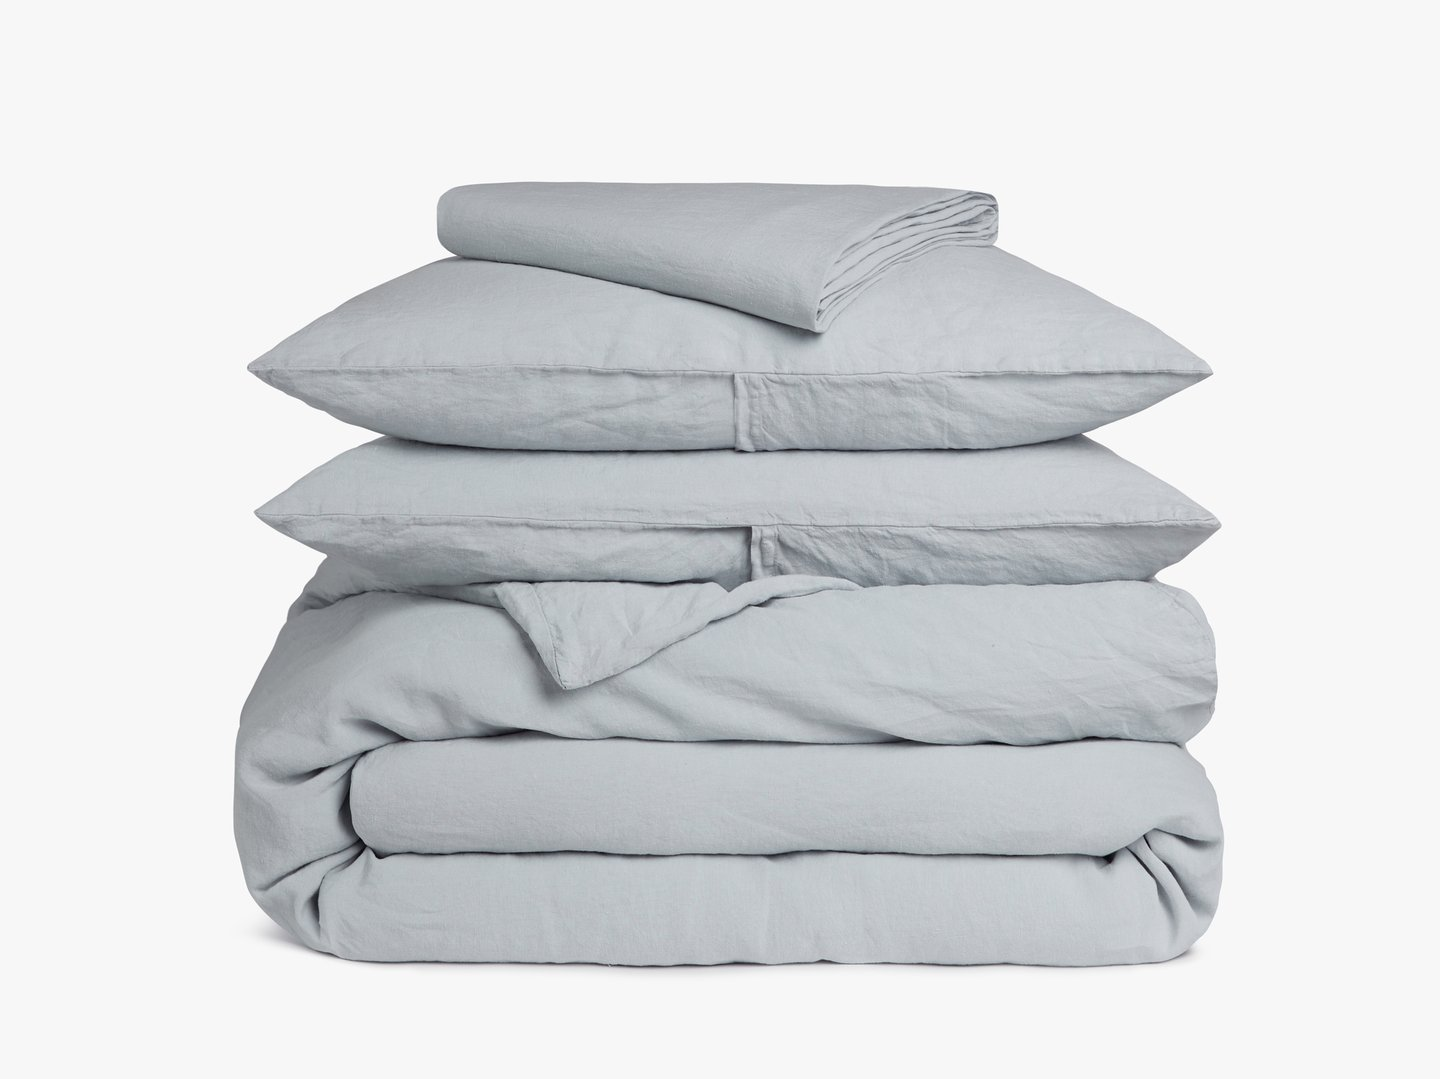 Best linen bed sheets from Parachute